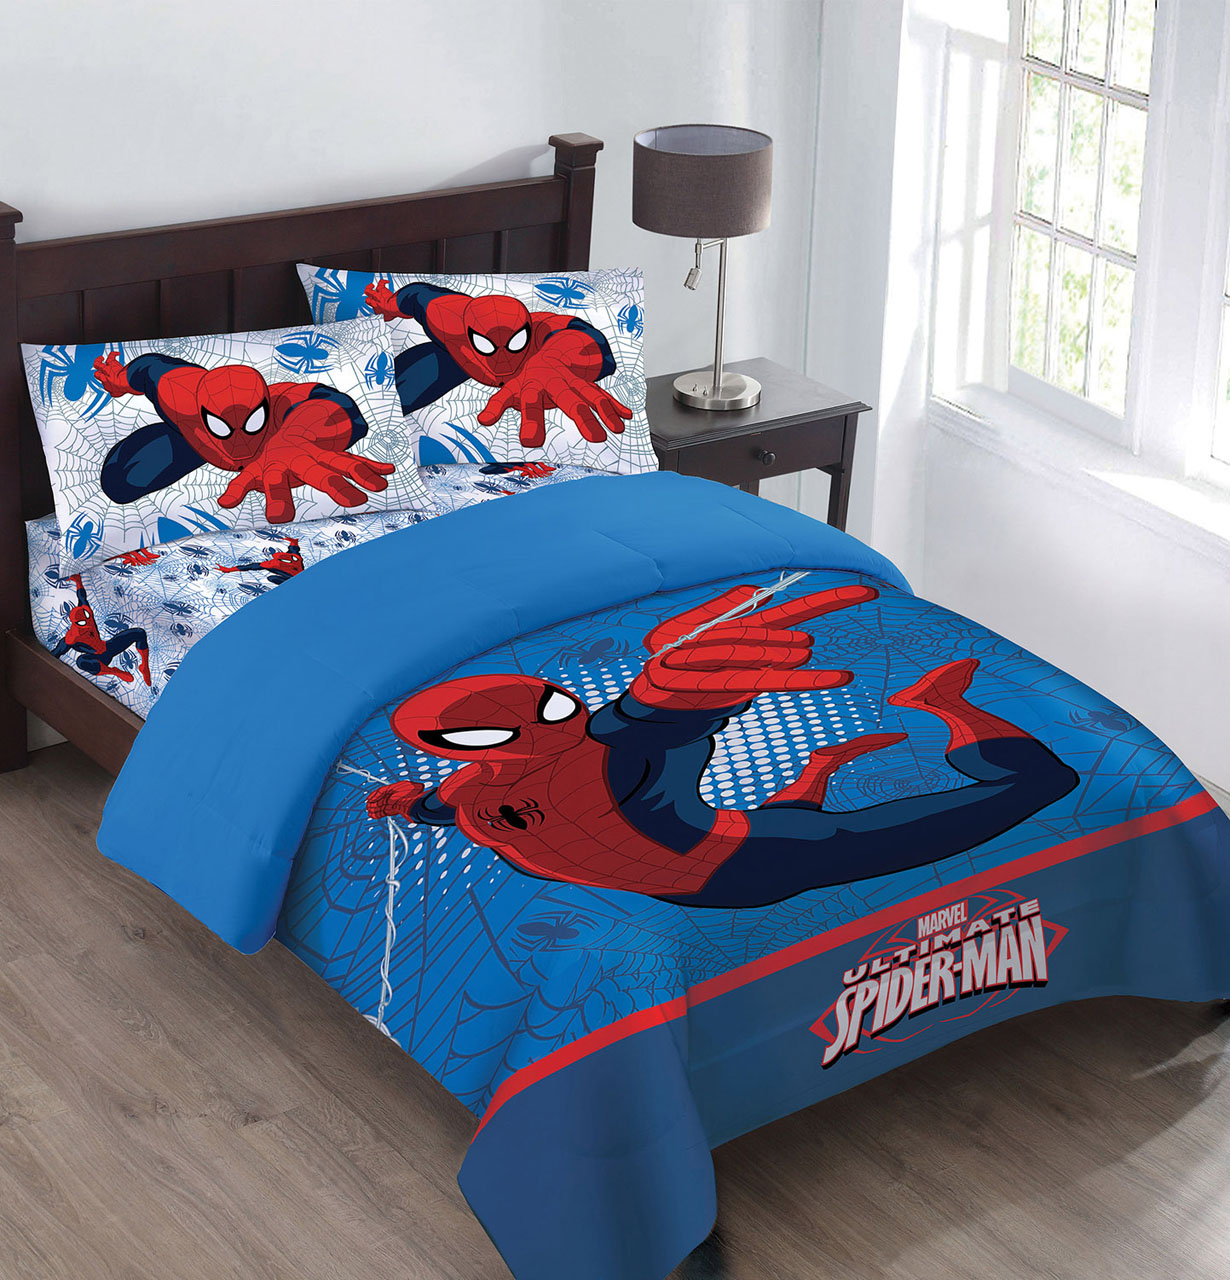 Marvel The Spiderman Webbed Wonder Twin Comforter Set with Fitted Sheet